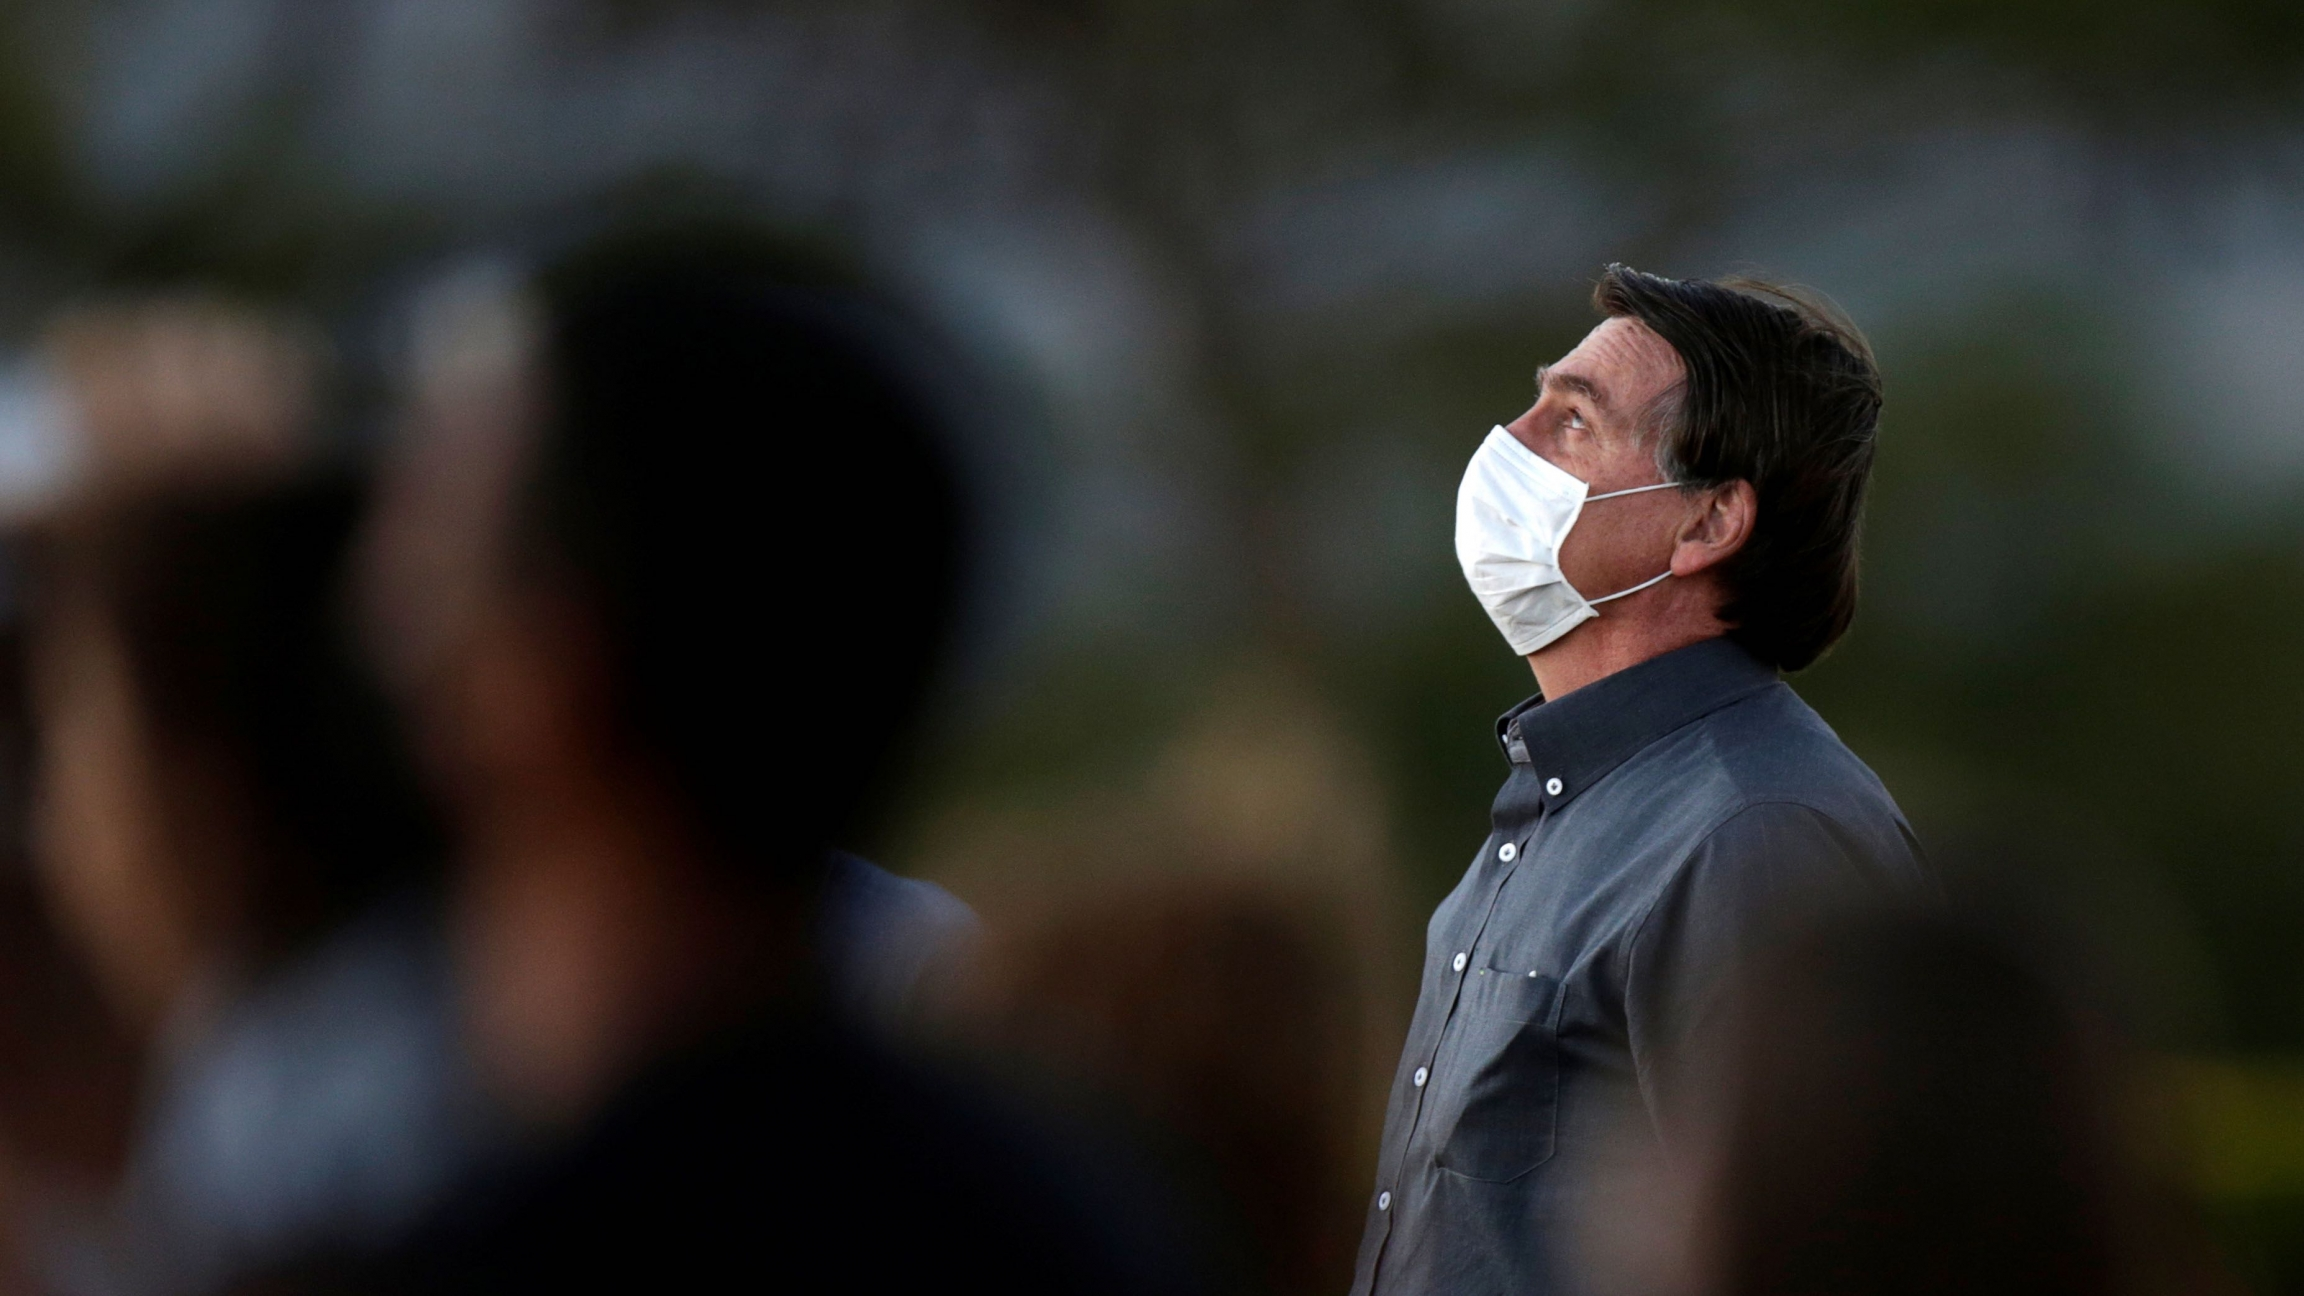 Brazil's President Jair Bolsonaro is seen during a ceremony to lower the Brazilian National flag down for the night, at the Alvorada Palace, amid the coronavirus outbreak in Brasília, Brazil, July 20, 2020.